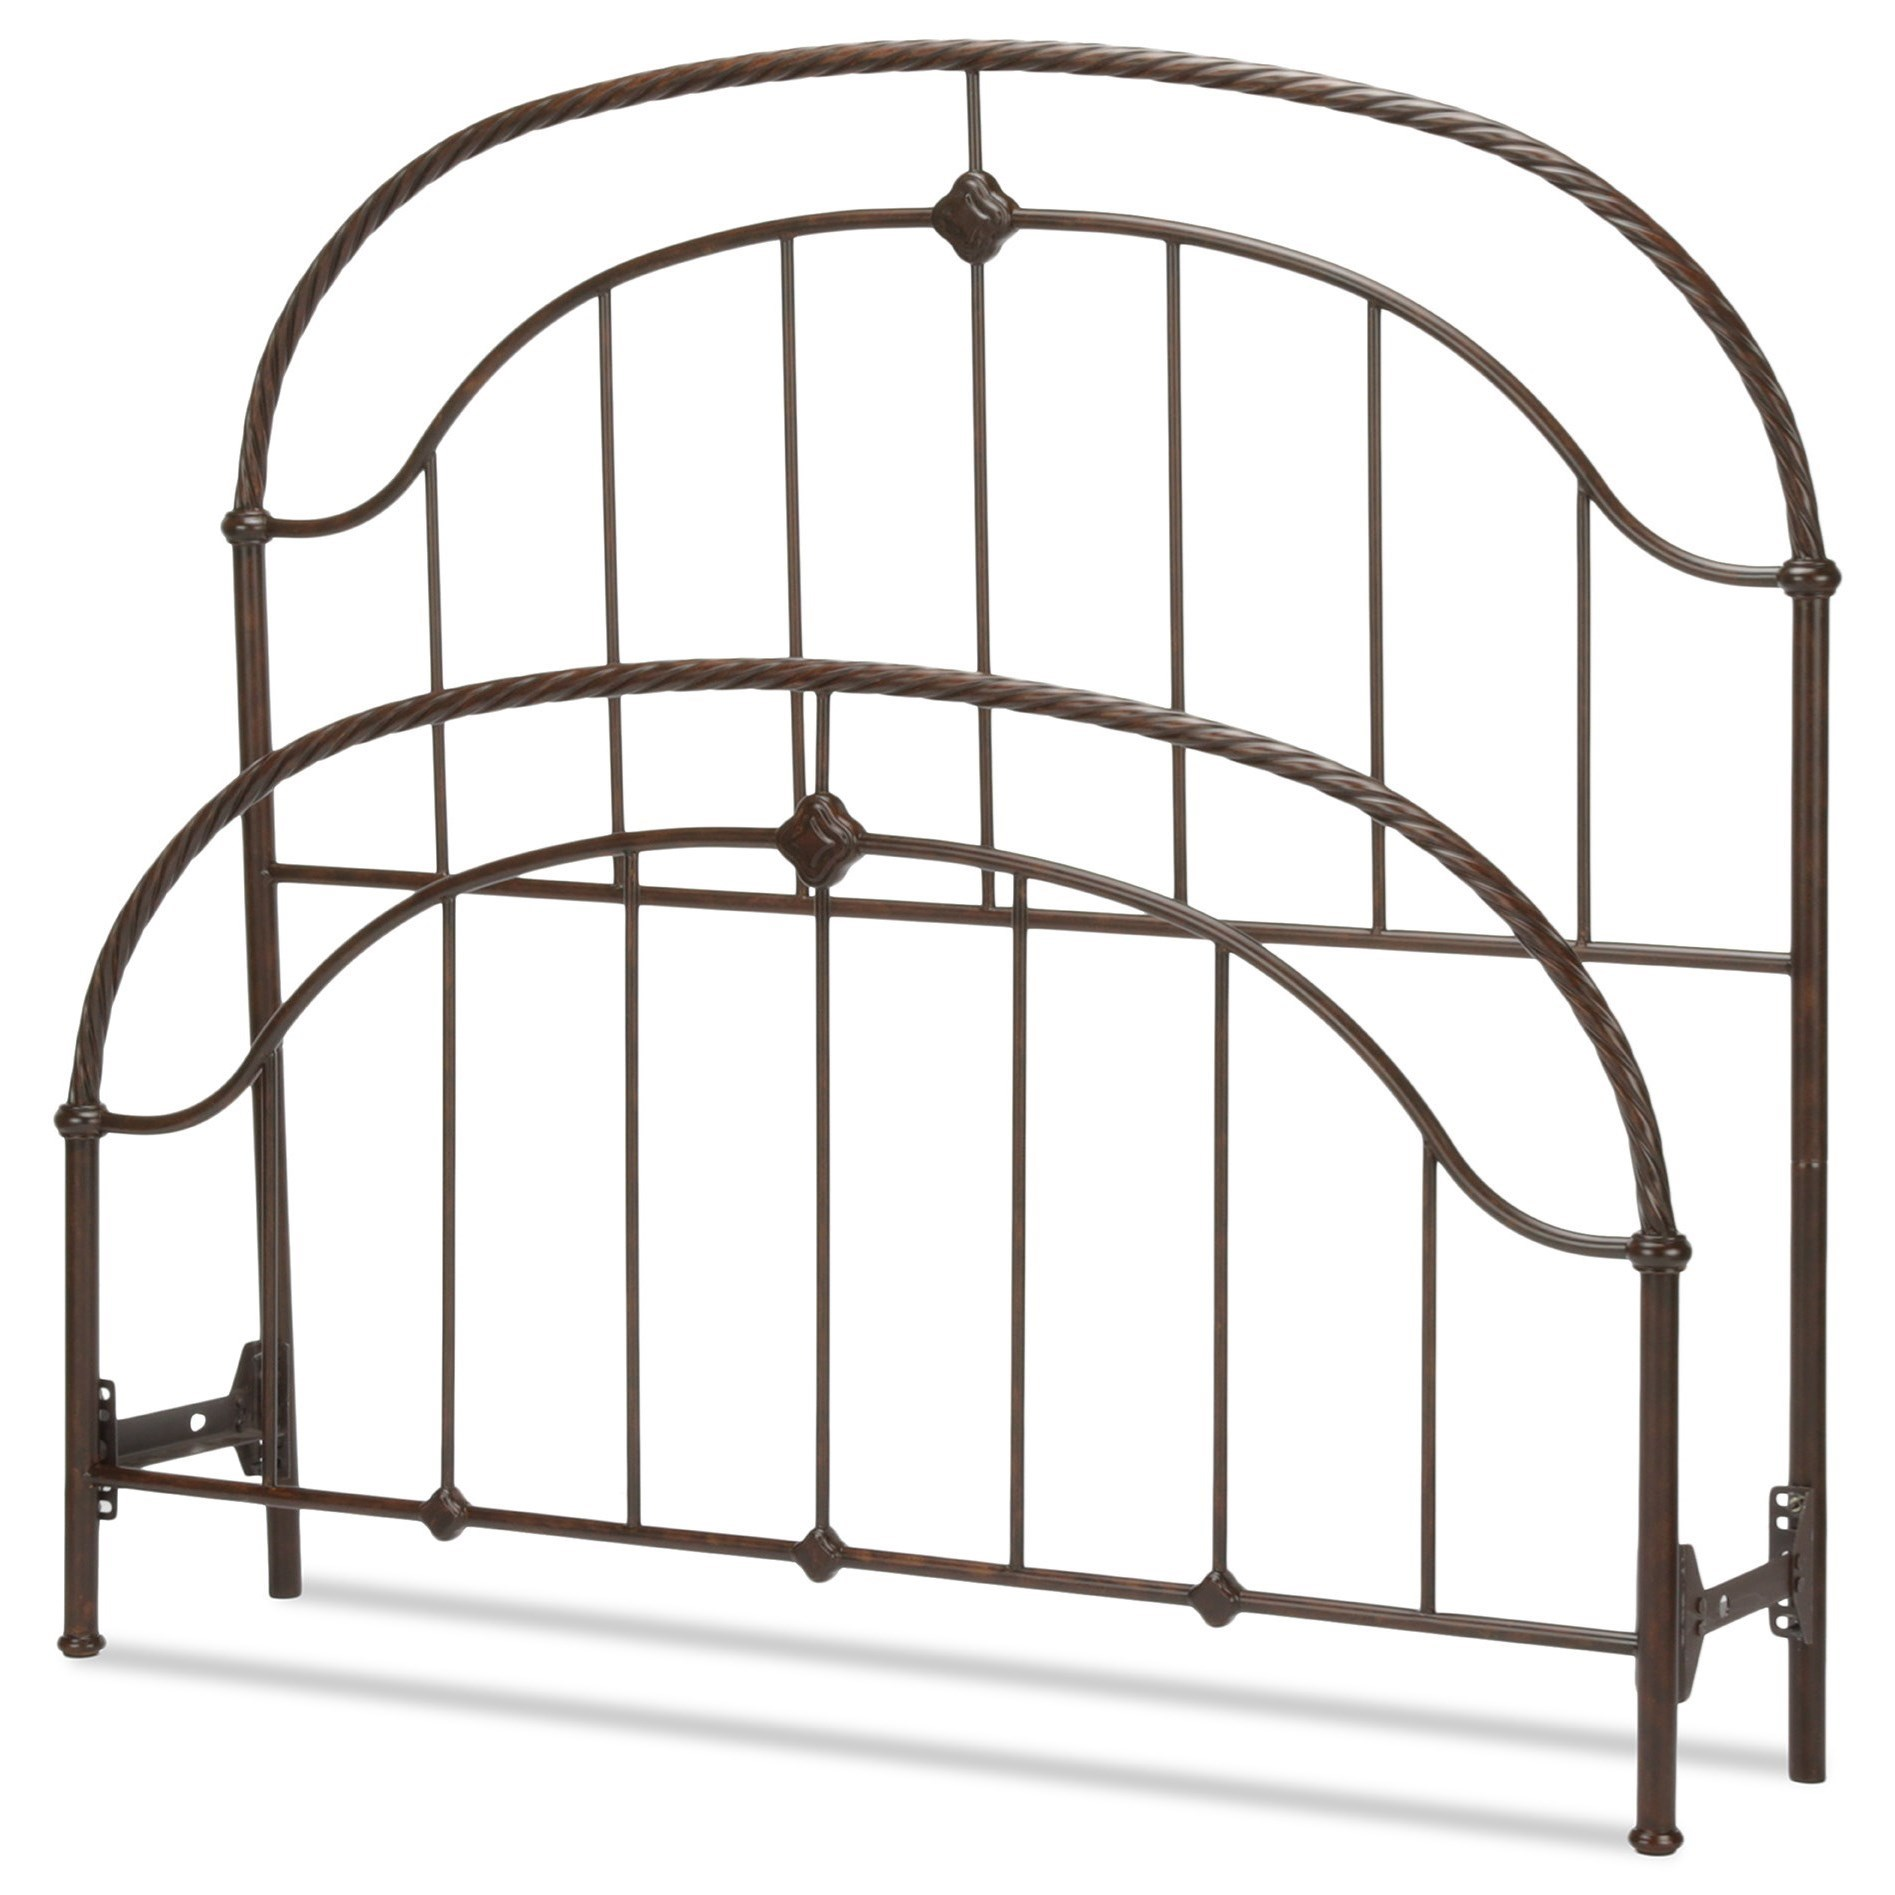 Fashion Bed Group Metal Beds Queen Cascade Headboard and Footboard - Item Number: B10385